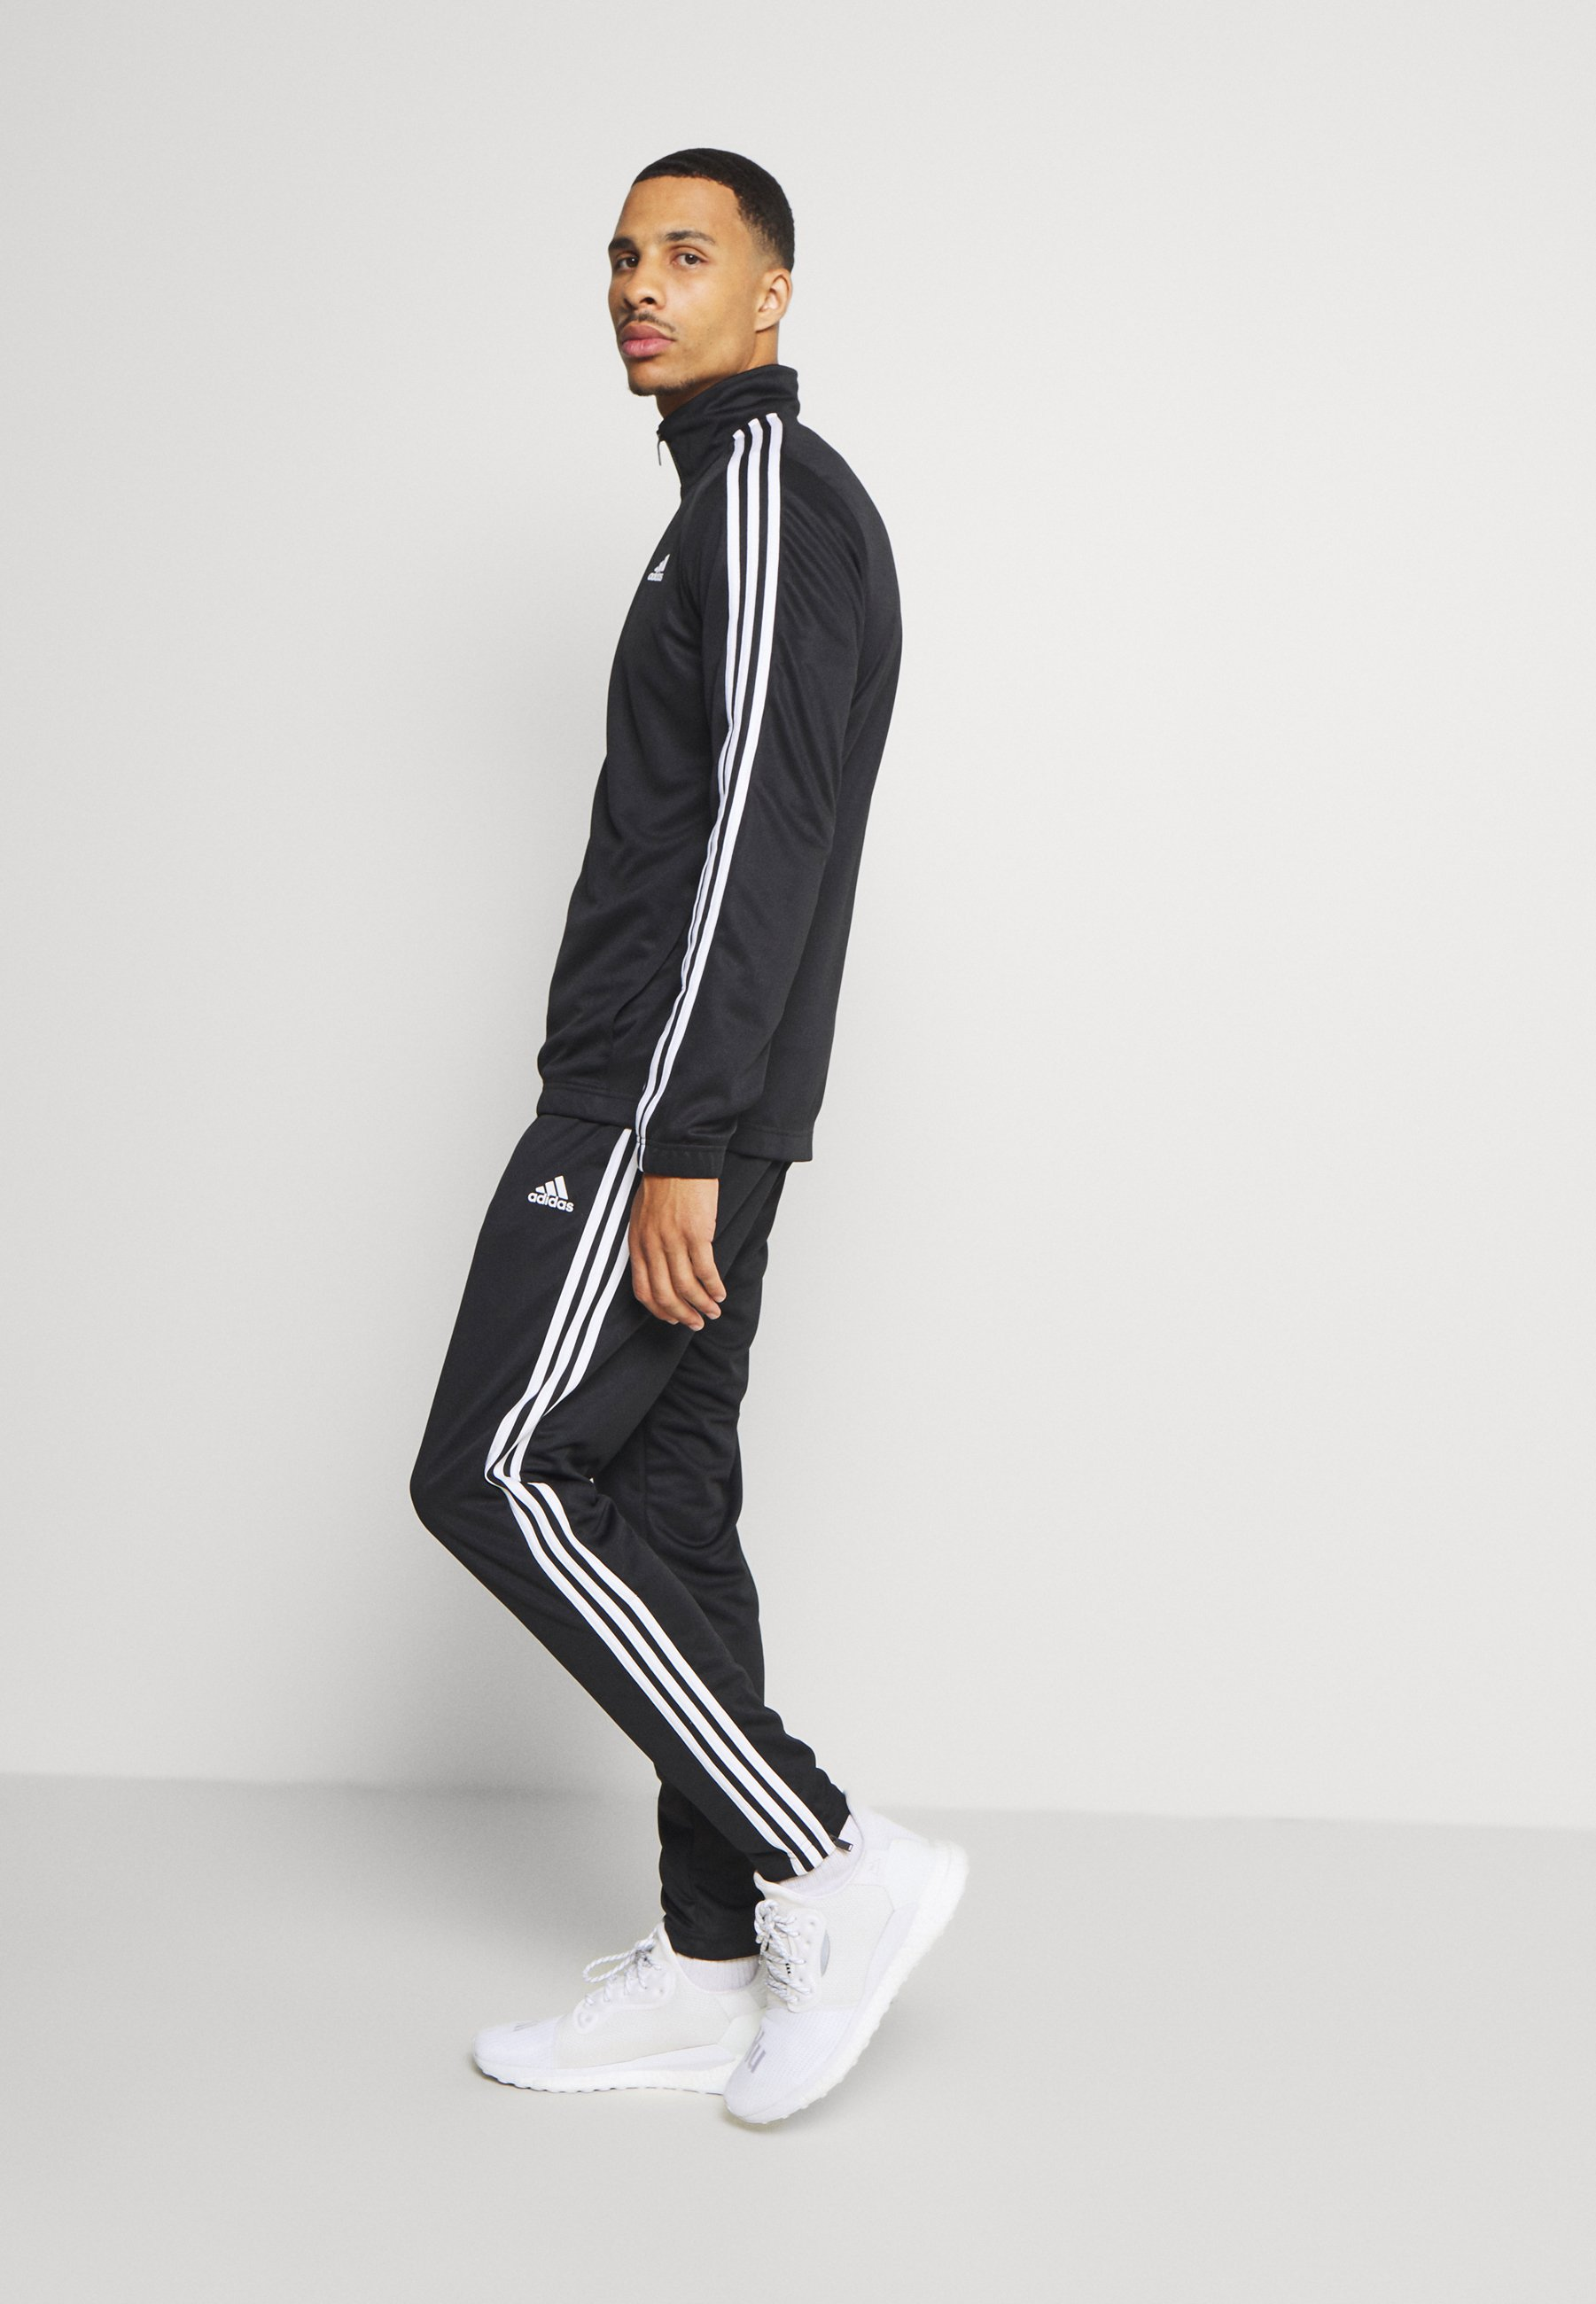 Adidas Performance Tiro Aeroready Sports Tracksuit Set - Treningsdress Black/svart